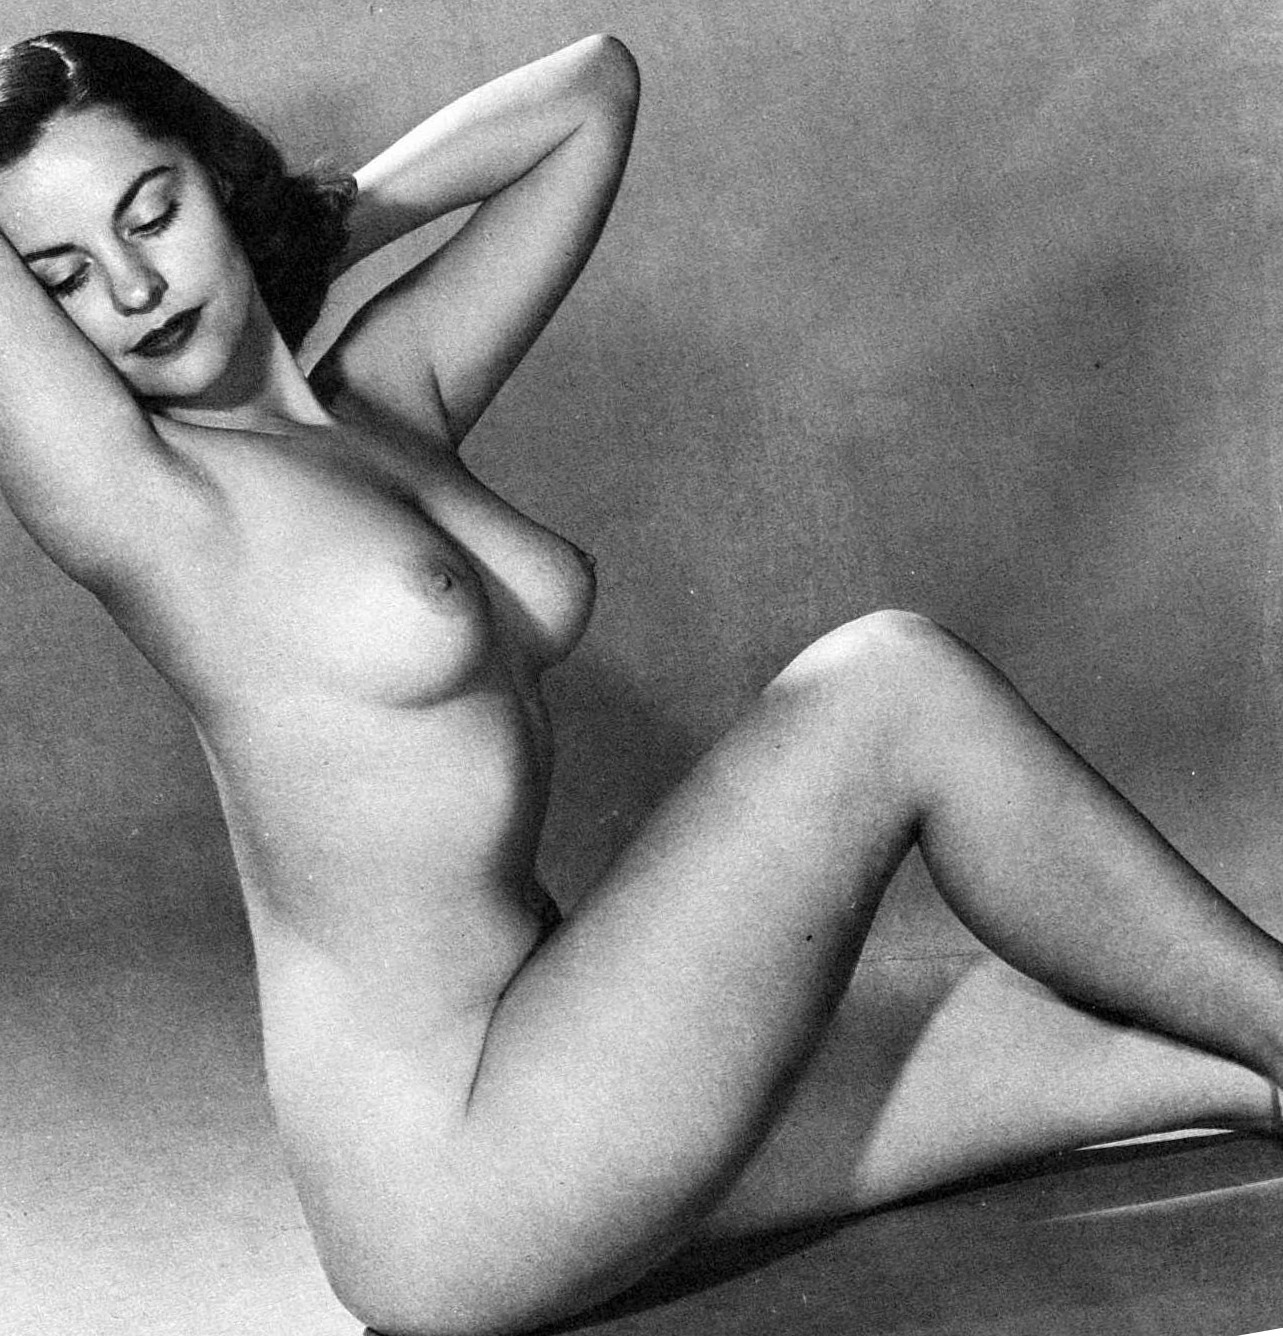 vintage women full frontal nudity